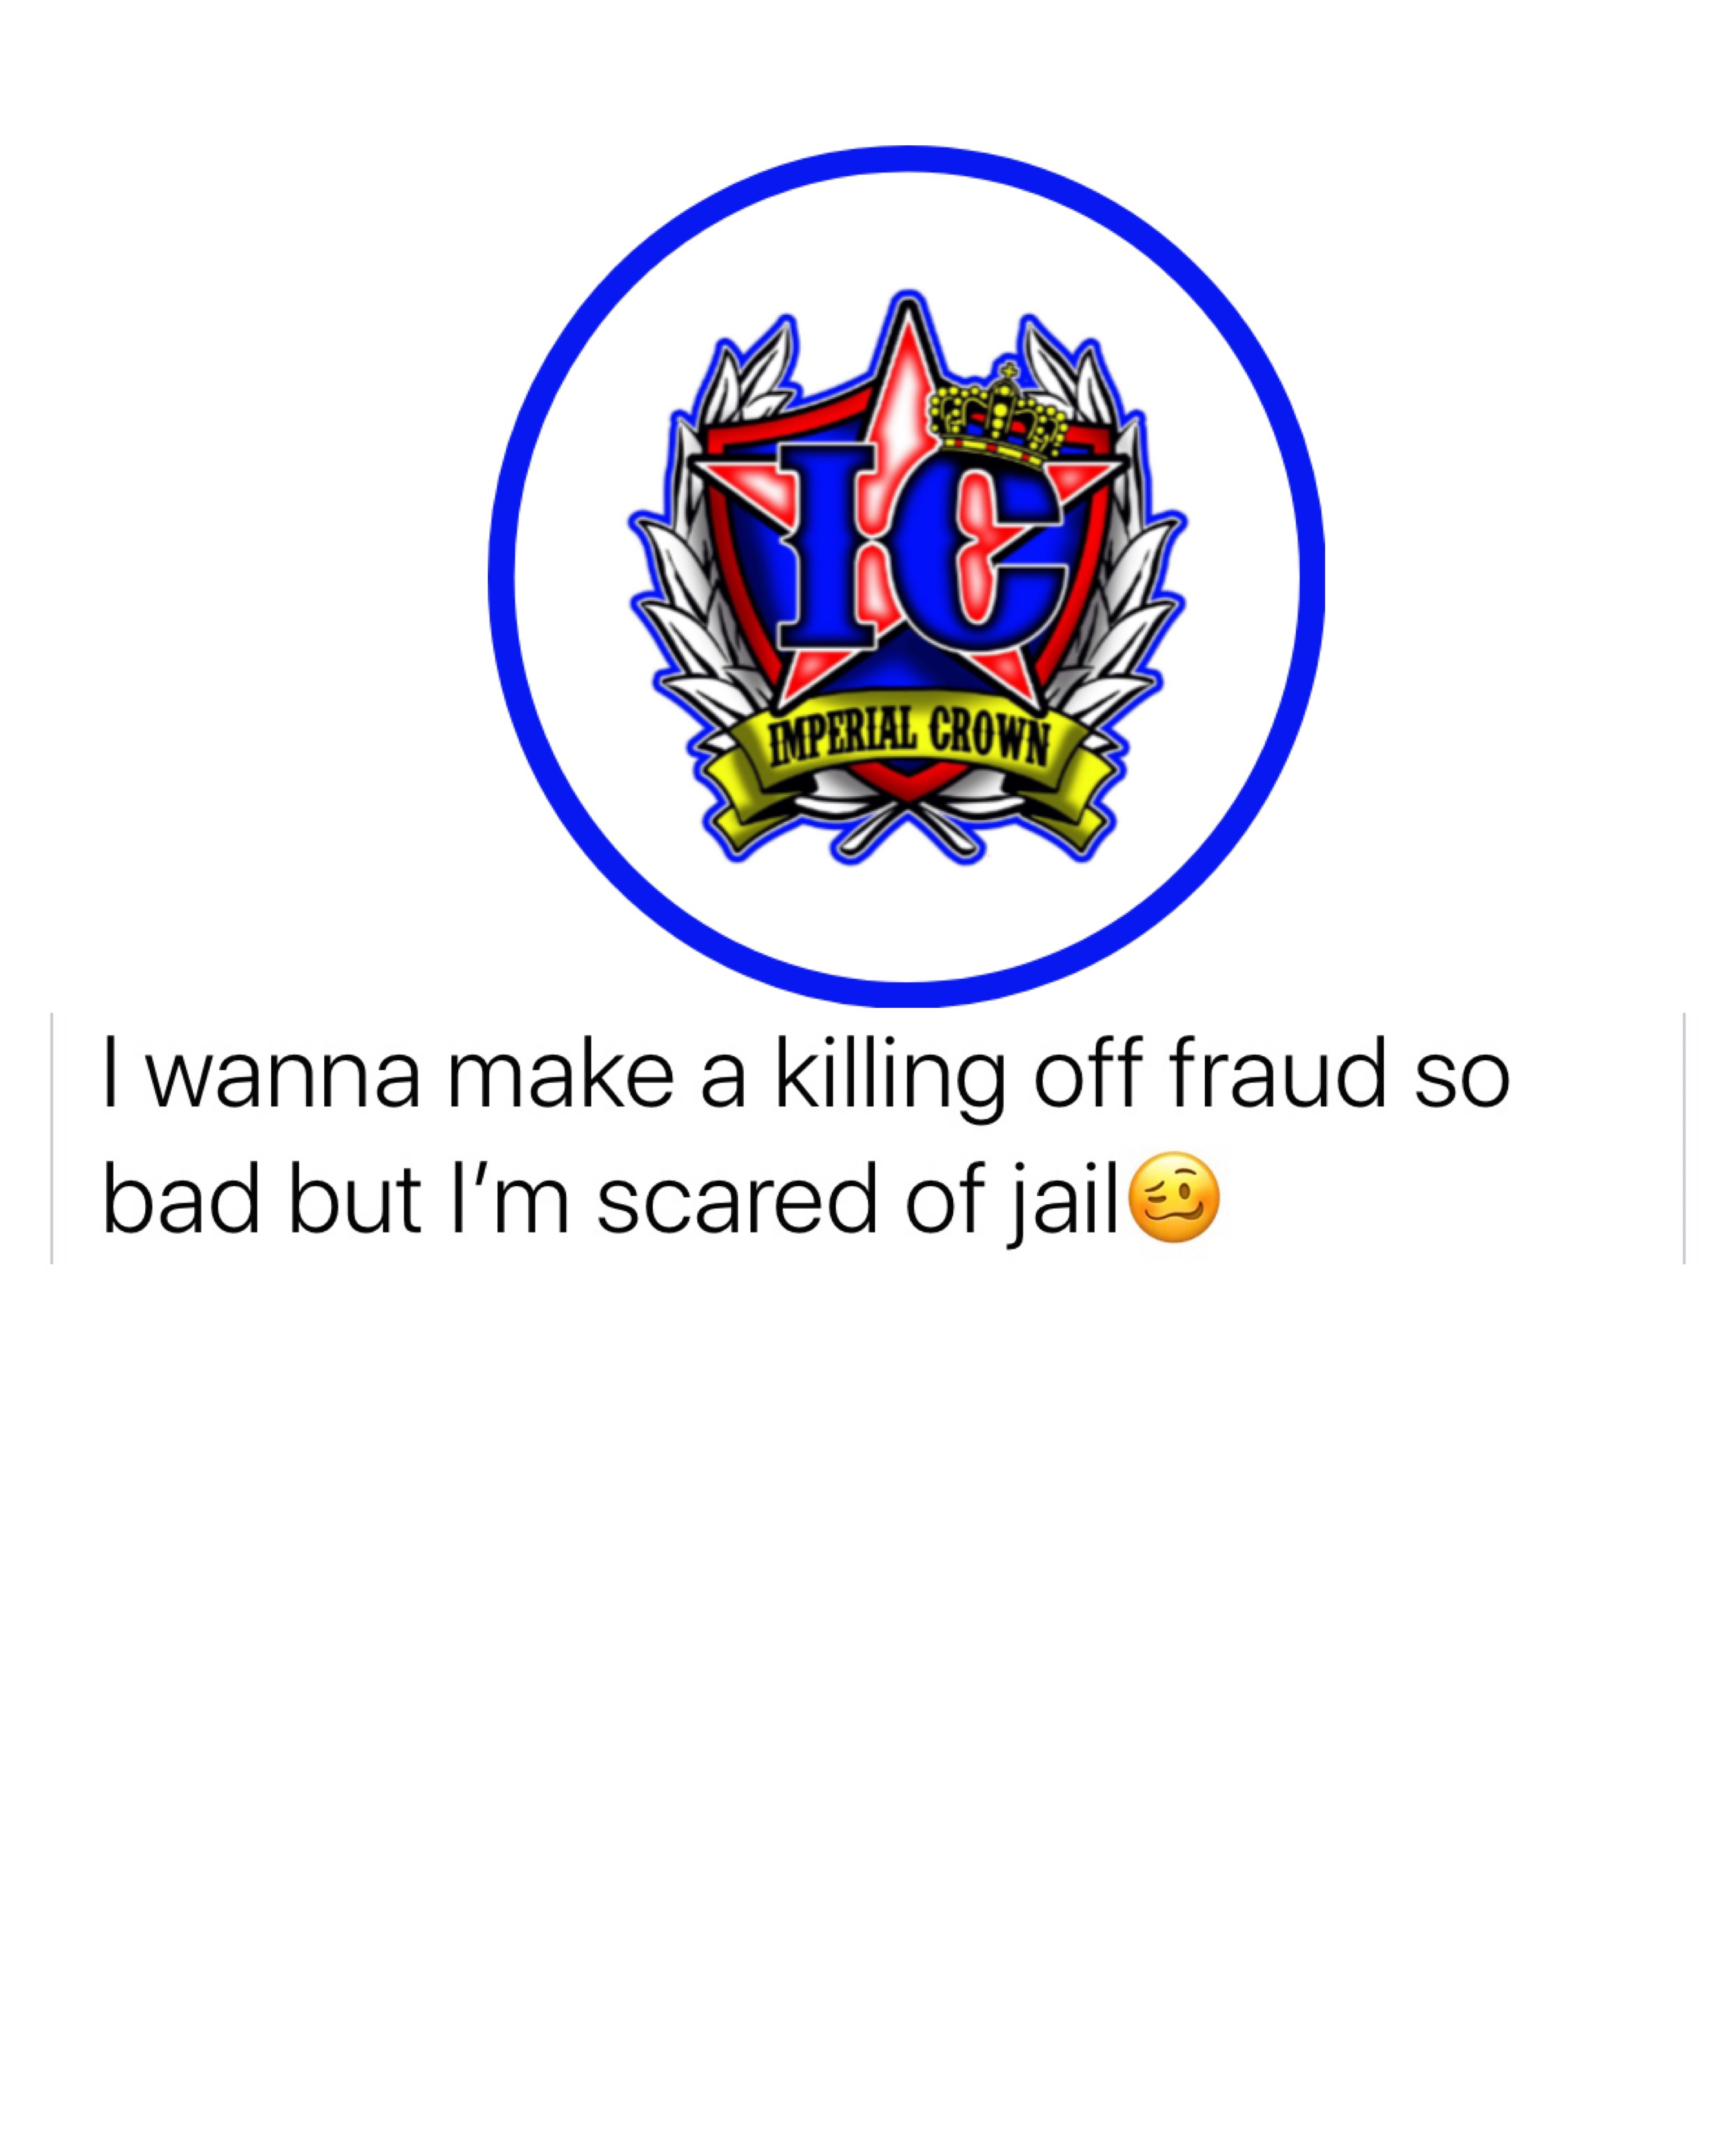 I want to make a killing off Friday so bad but I'm scared of Jail